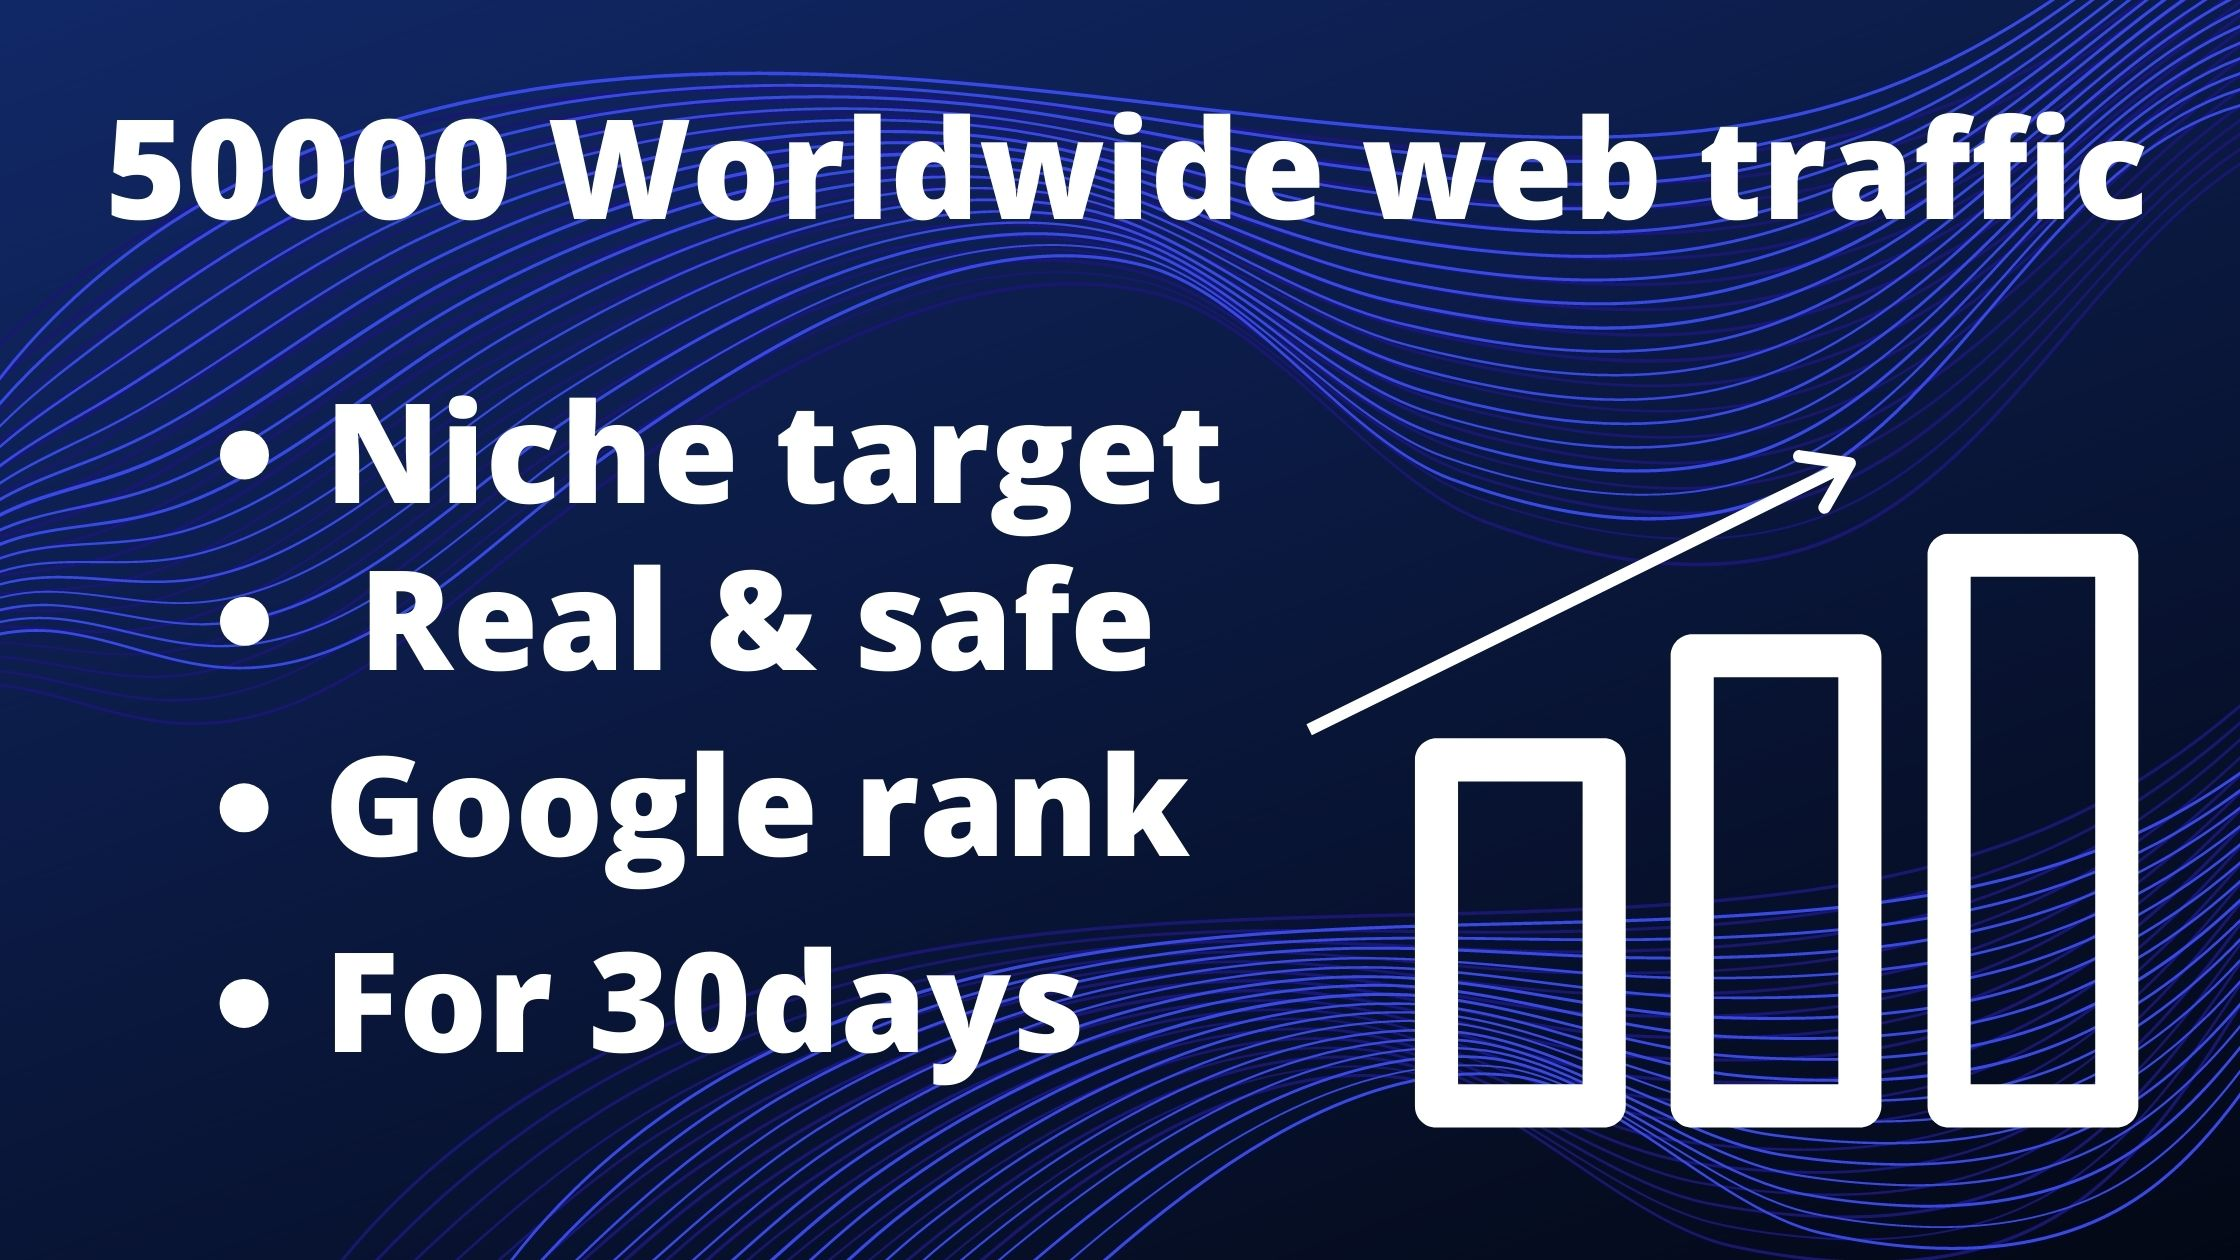 50000 Worldwide webtraffic for boost your website or blog